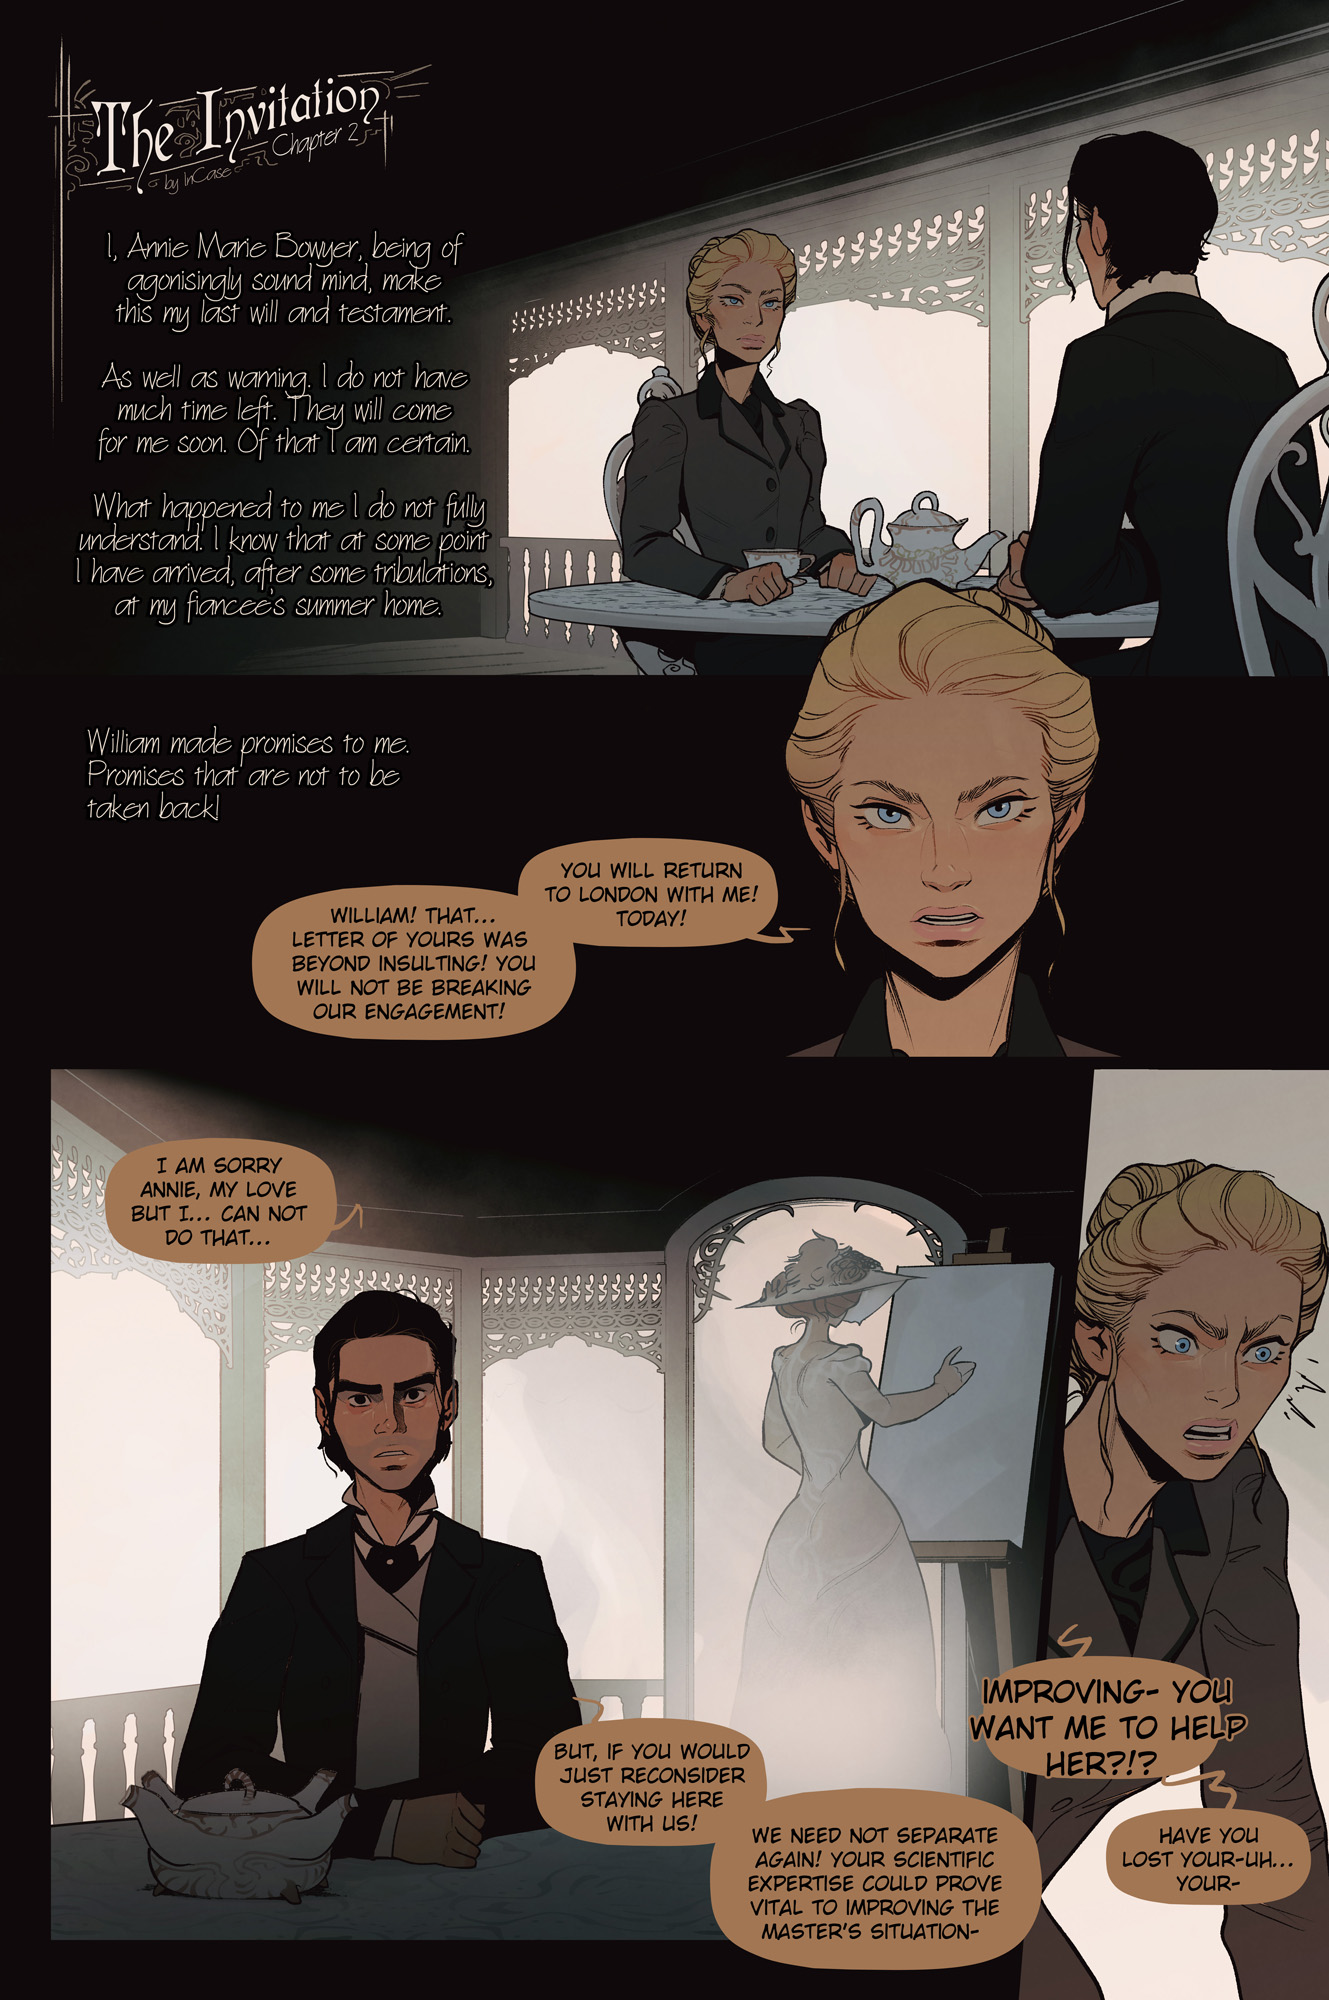 The Invitation chapter 2 page 1